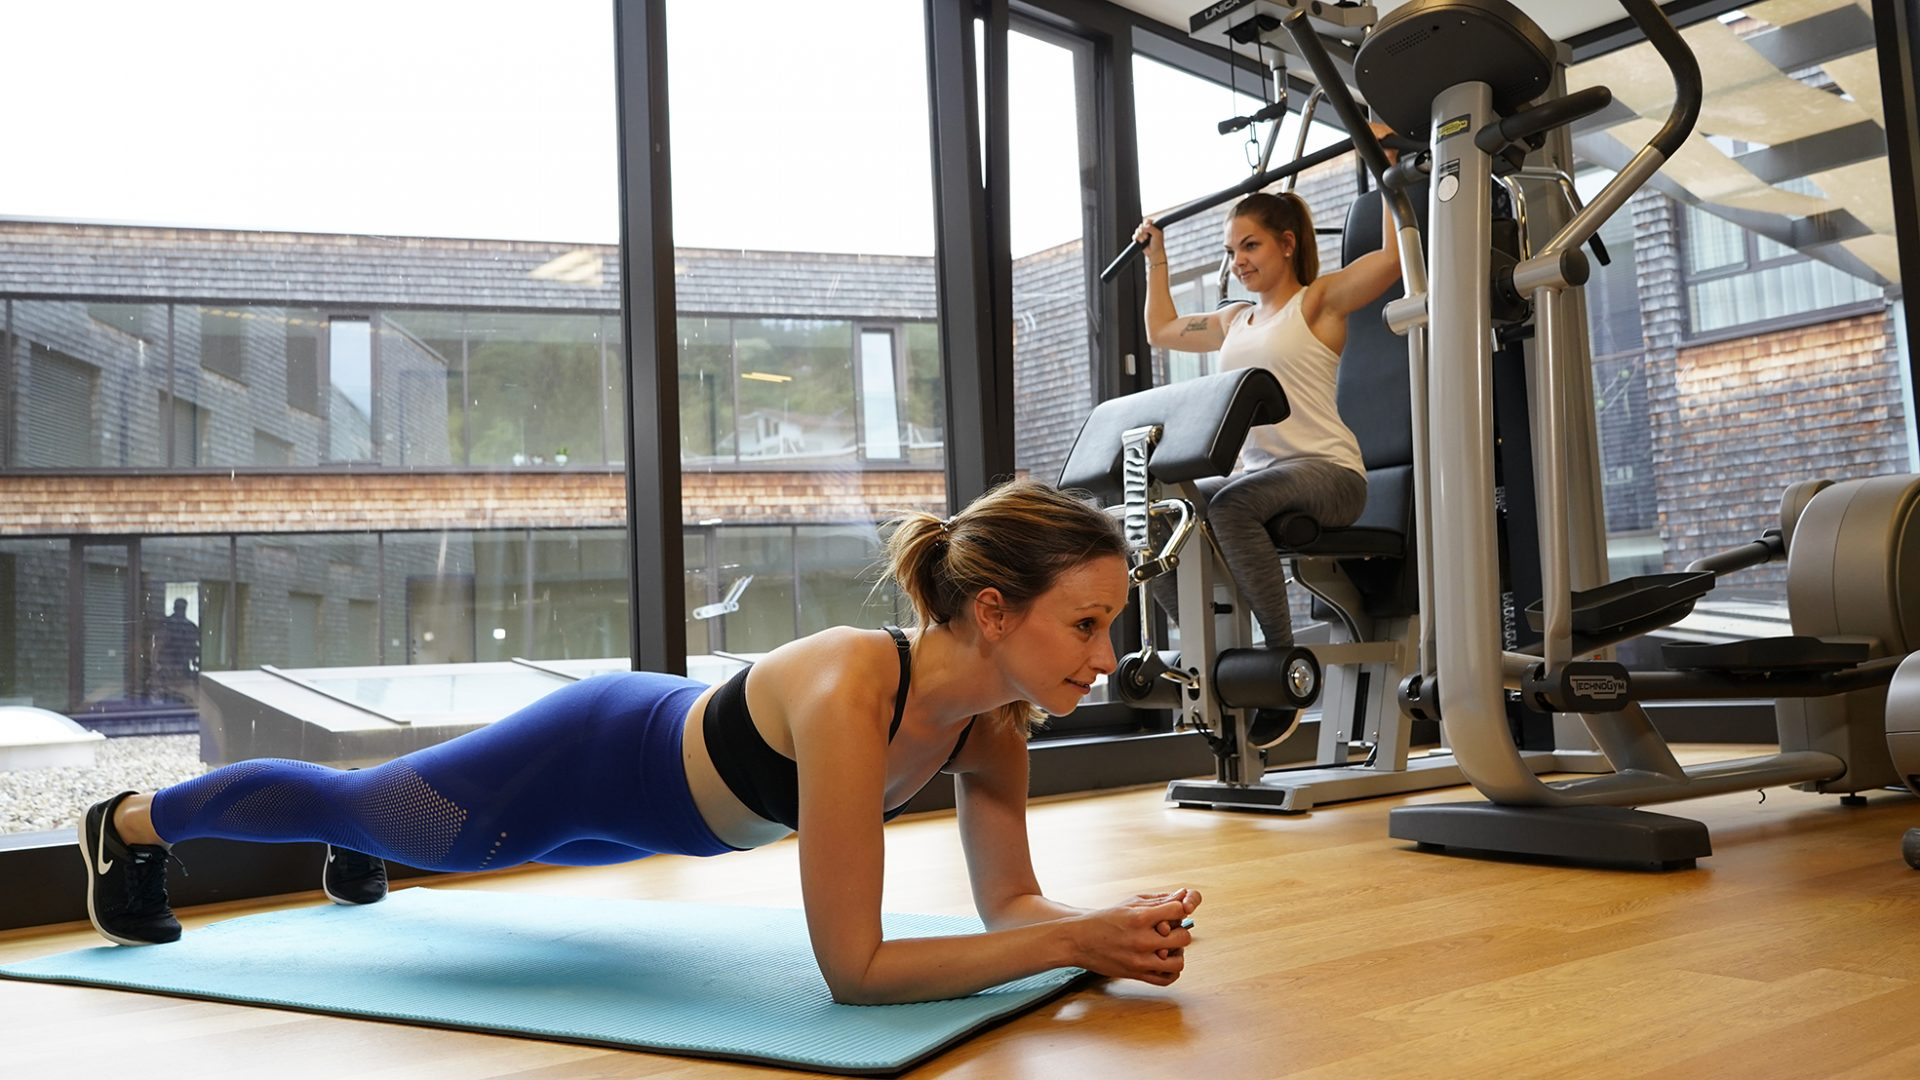 Sternen Hotel Fitness